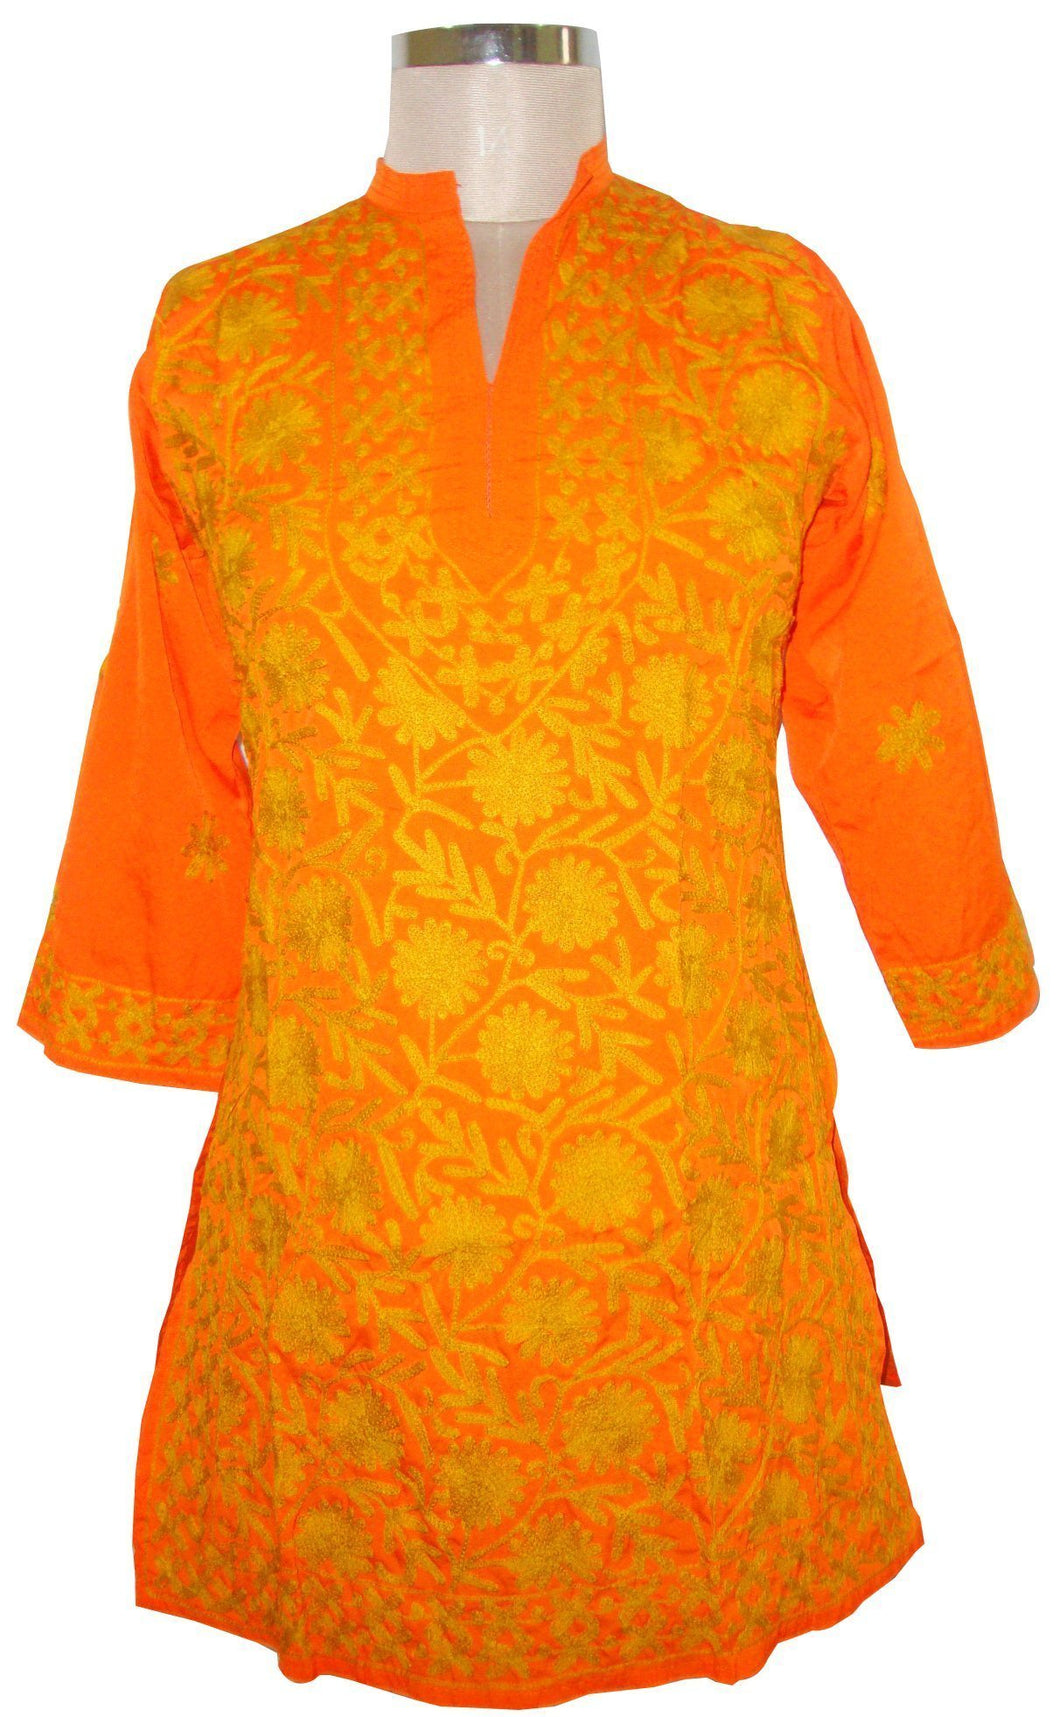 Orange Kamas Crepe Kurti Dress Size 40 SC562 - Ethnic's By Anvi Creations